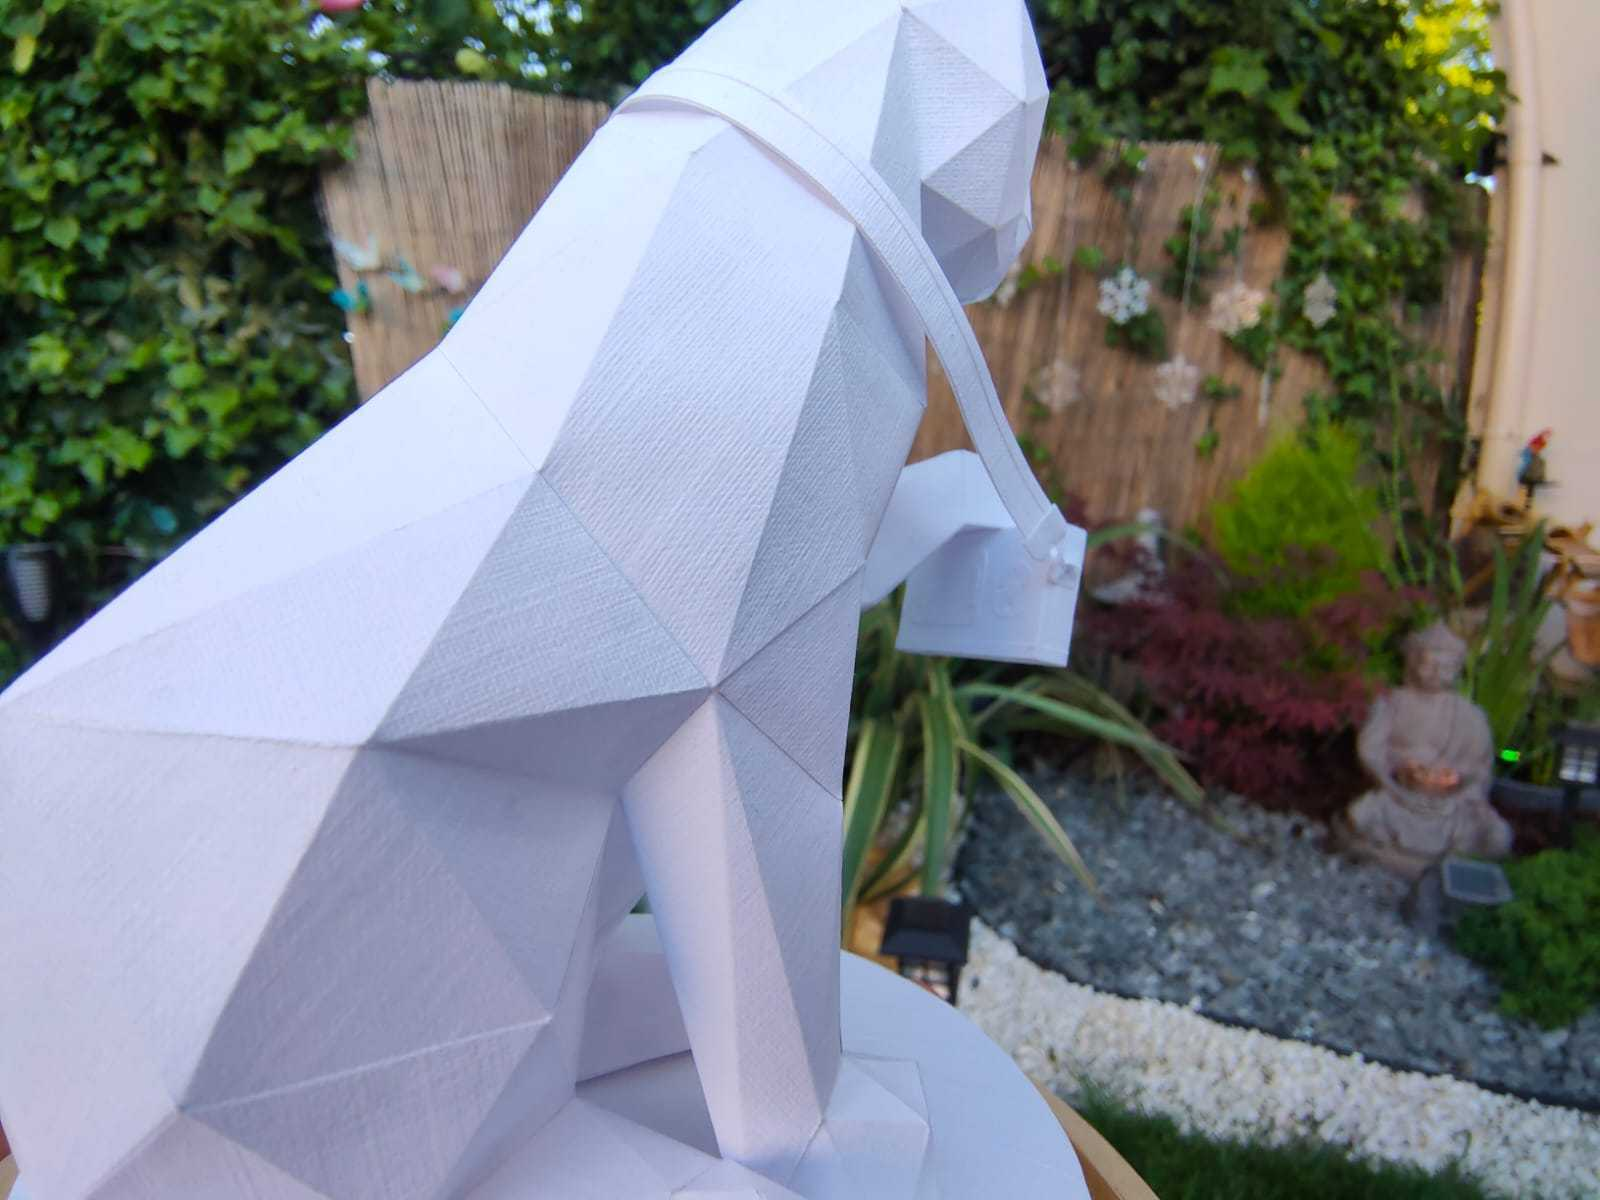 Papercraft Origami Cat Chat Paper Papier